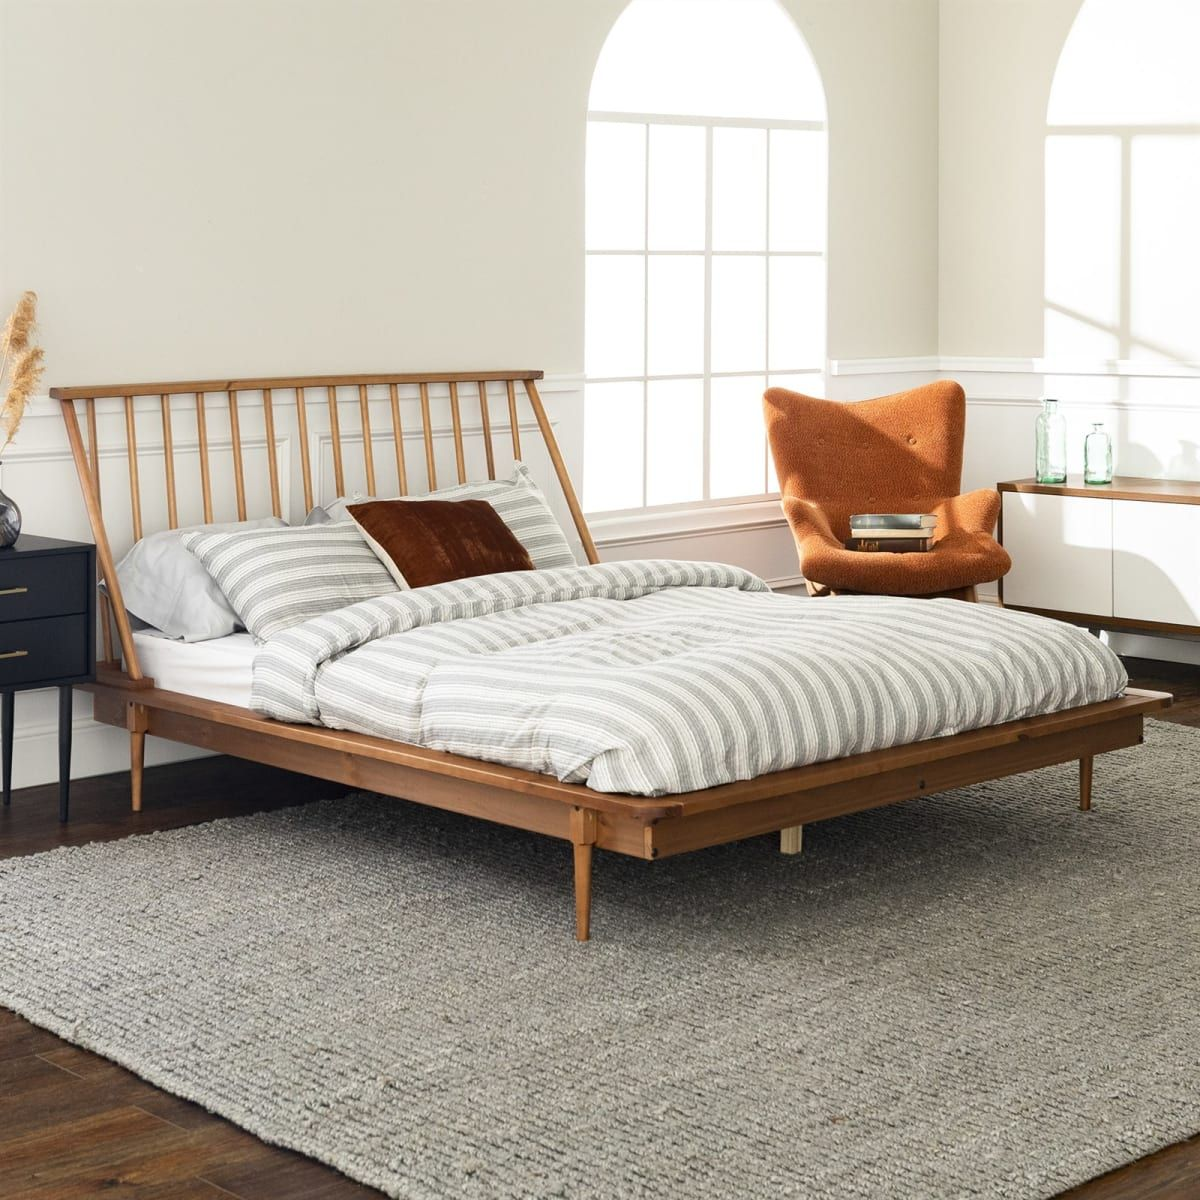 Modern Wood Queen Spindle Bed in 2020   Spindle bed, Boho ... on Modern Boho Bed Frame  id=42333